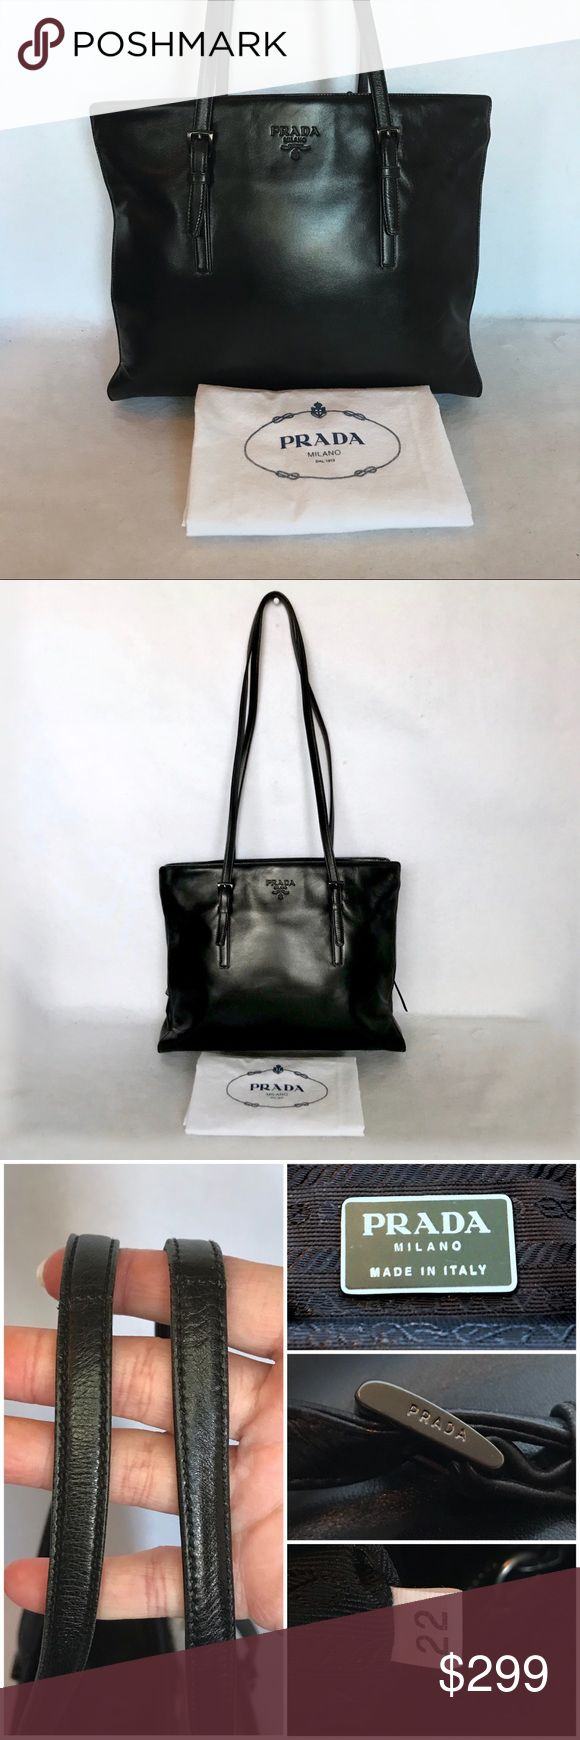 """PRADA Nappa Leather Shoulder Tote w/ Dust Bag 👉 TRADE VALUE: $399  Very gently used. Shows only minimal wear.  Super soft nero black calfskin & gun metal embossed hardware. Features 3 compartments: two are open & the center has a zip closure. Flat shoulder straps with buckle detail. Embossed logo on front.  Length: 12.5"""" Height: 9.5"""" Depth: 4"""" Strap Drop: 13.5"""" Prada Bags Shoulder Bags"""